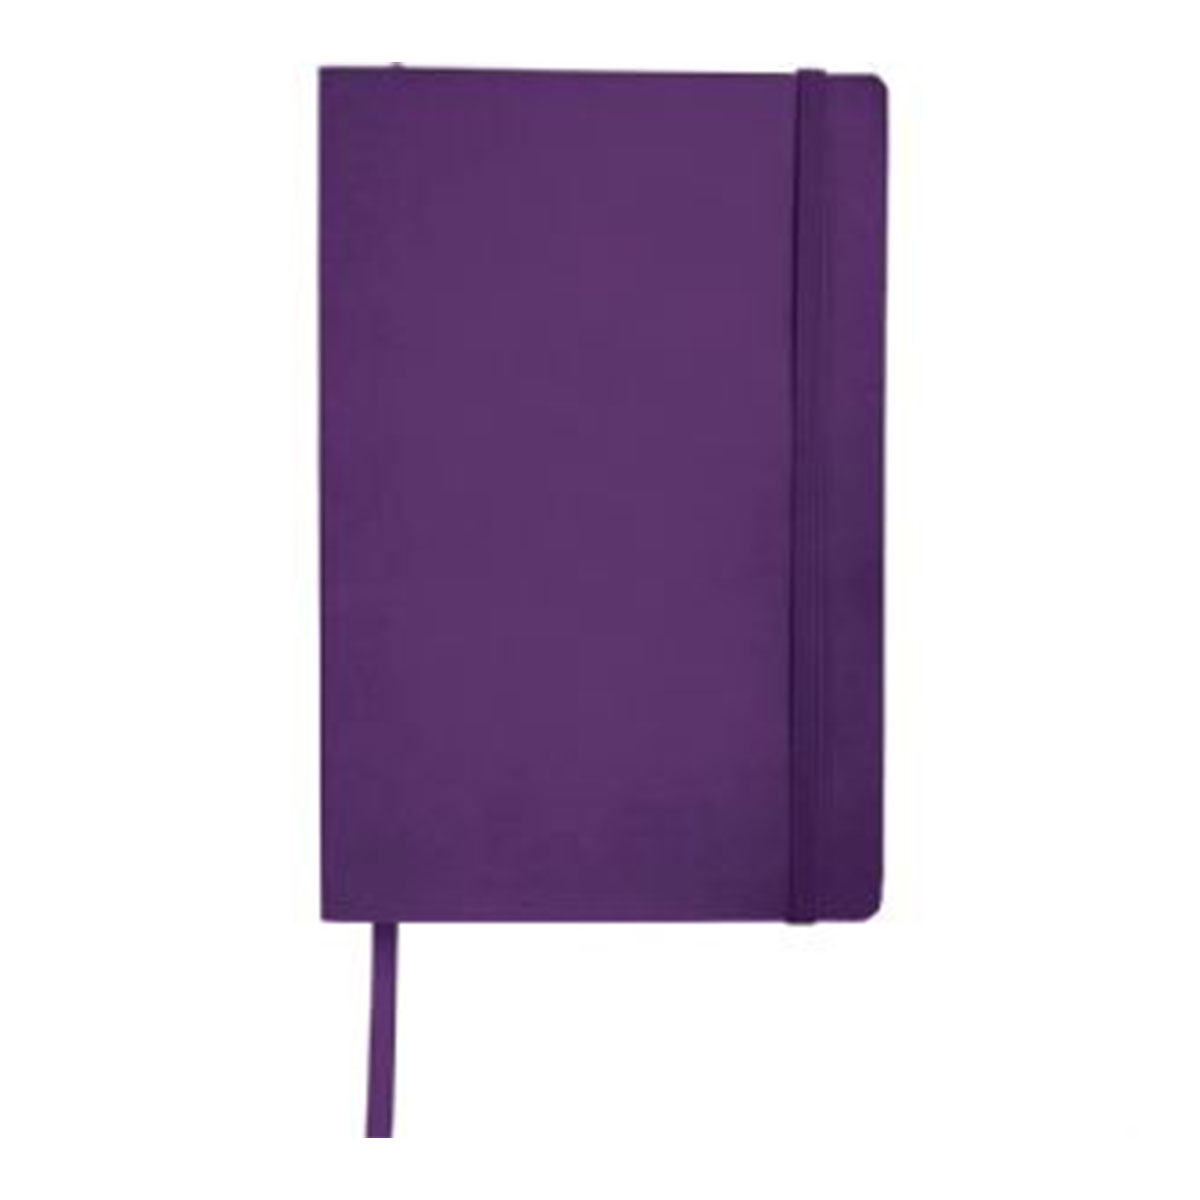 Pedova Soft Bound JournalBook-Purple